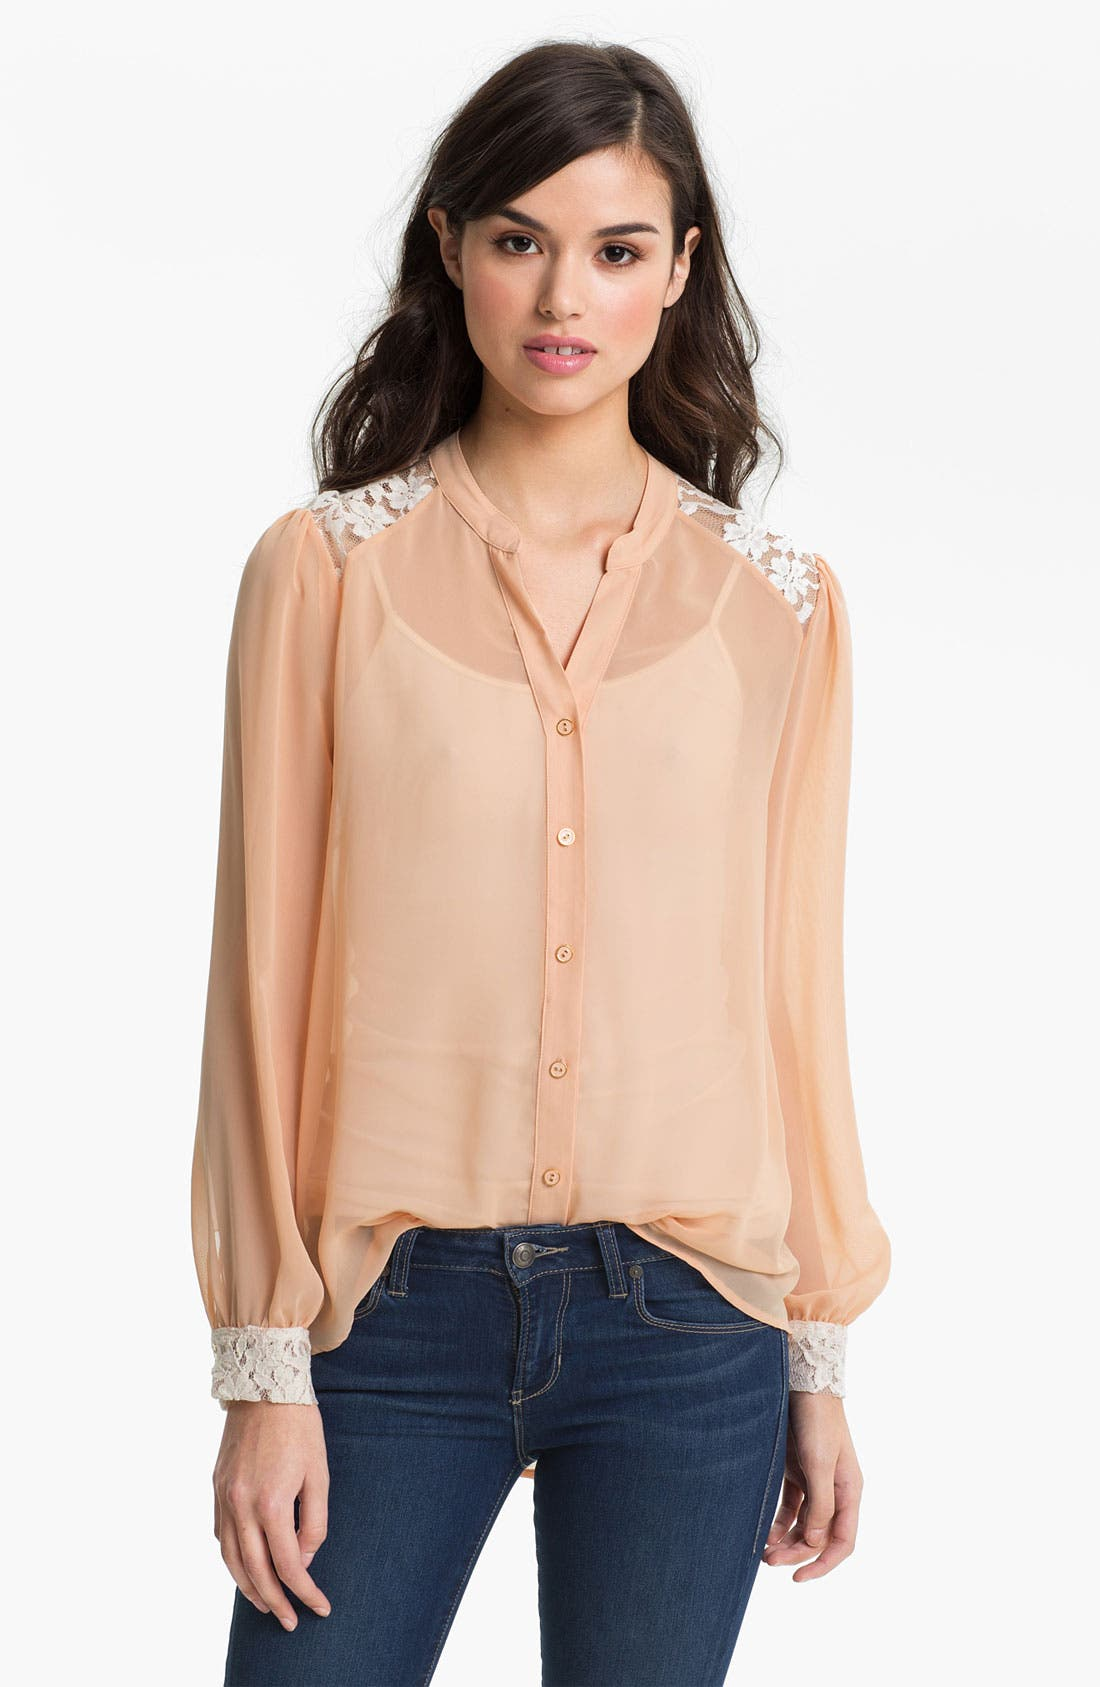 Main Image - Robin K Lace Trim Chiffon Shirt (Juniors)